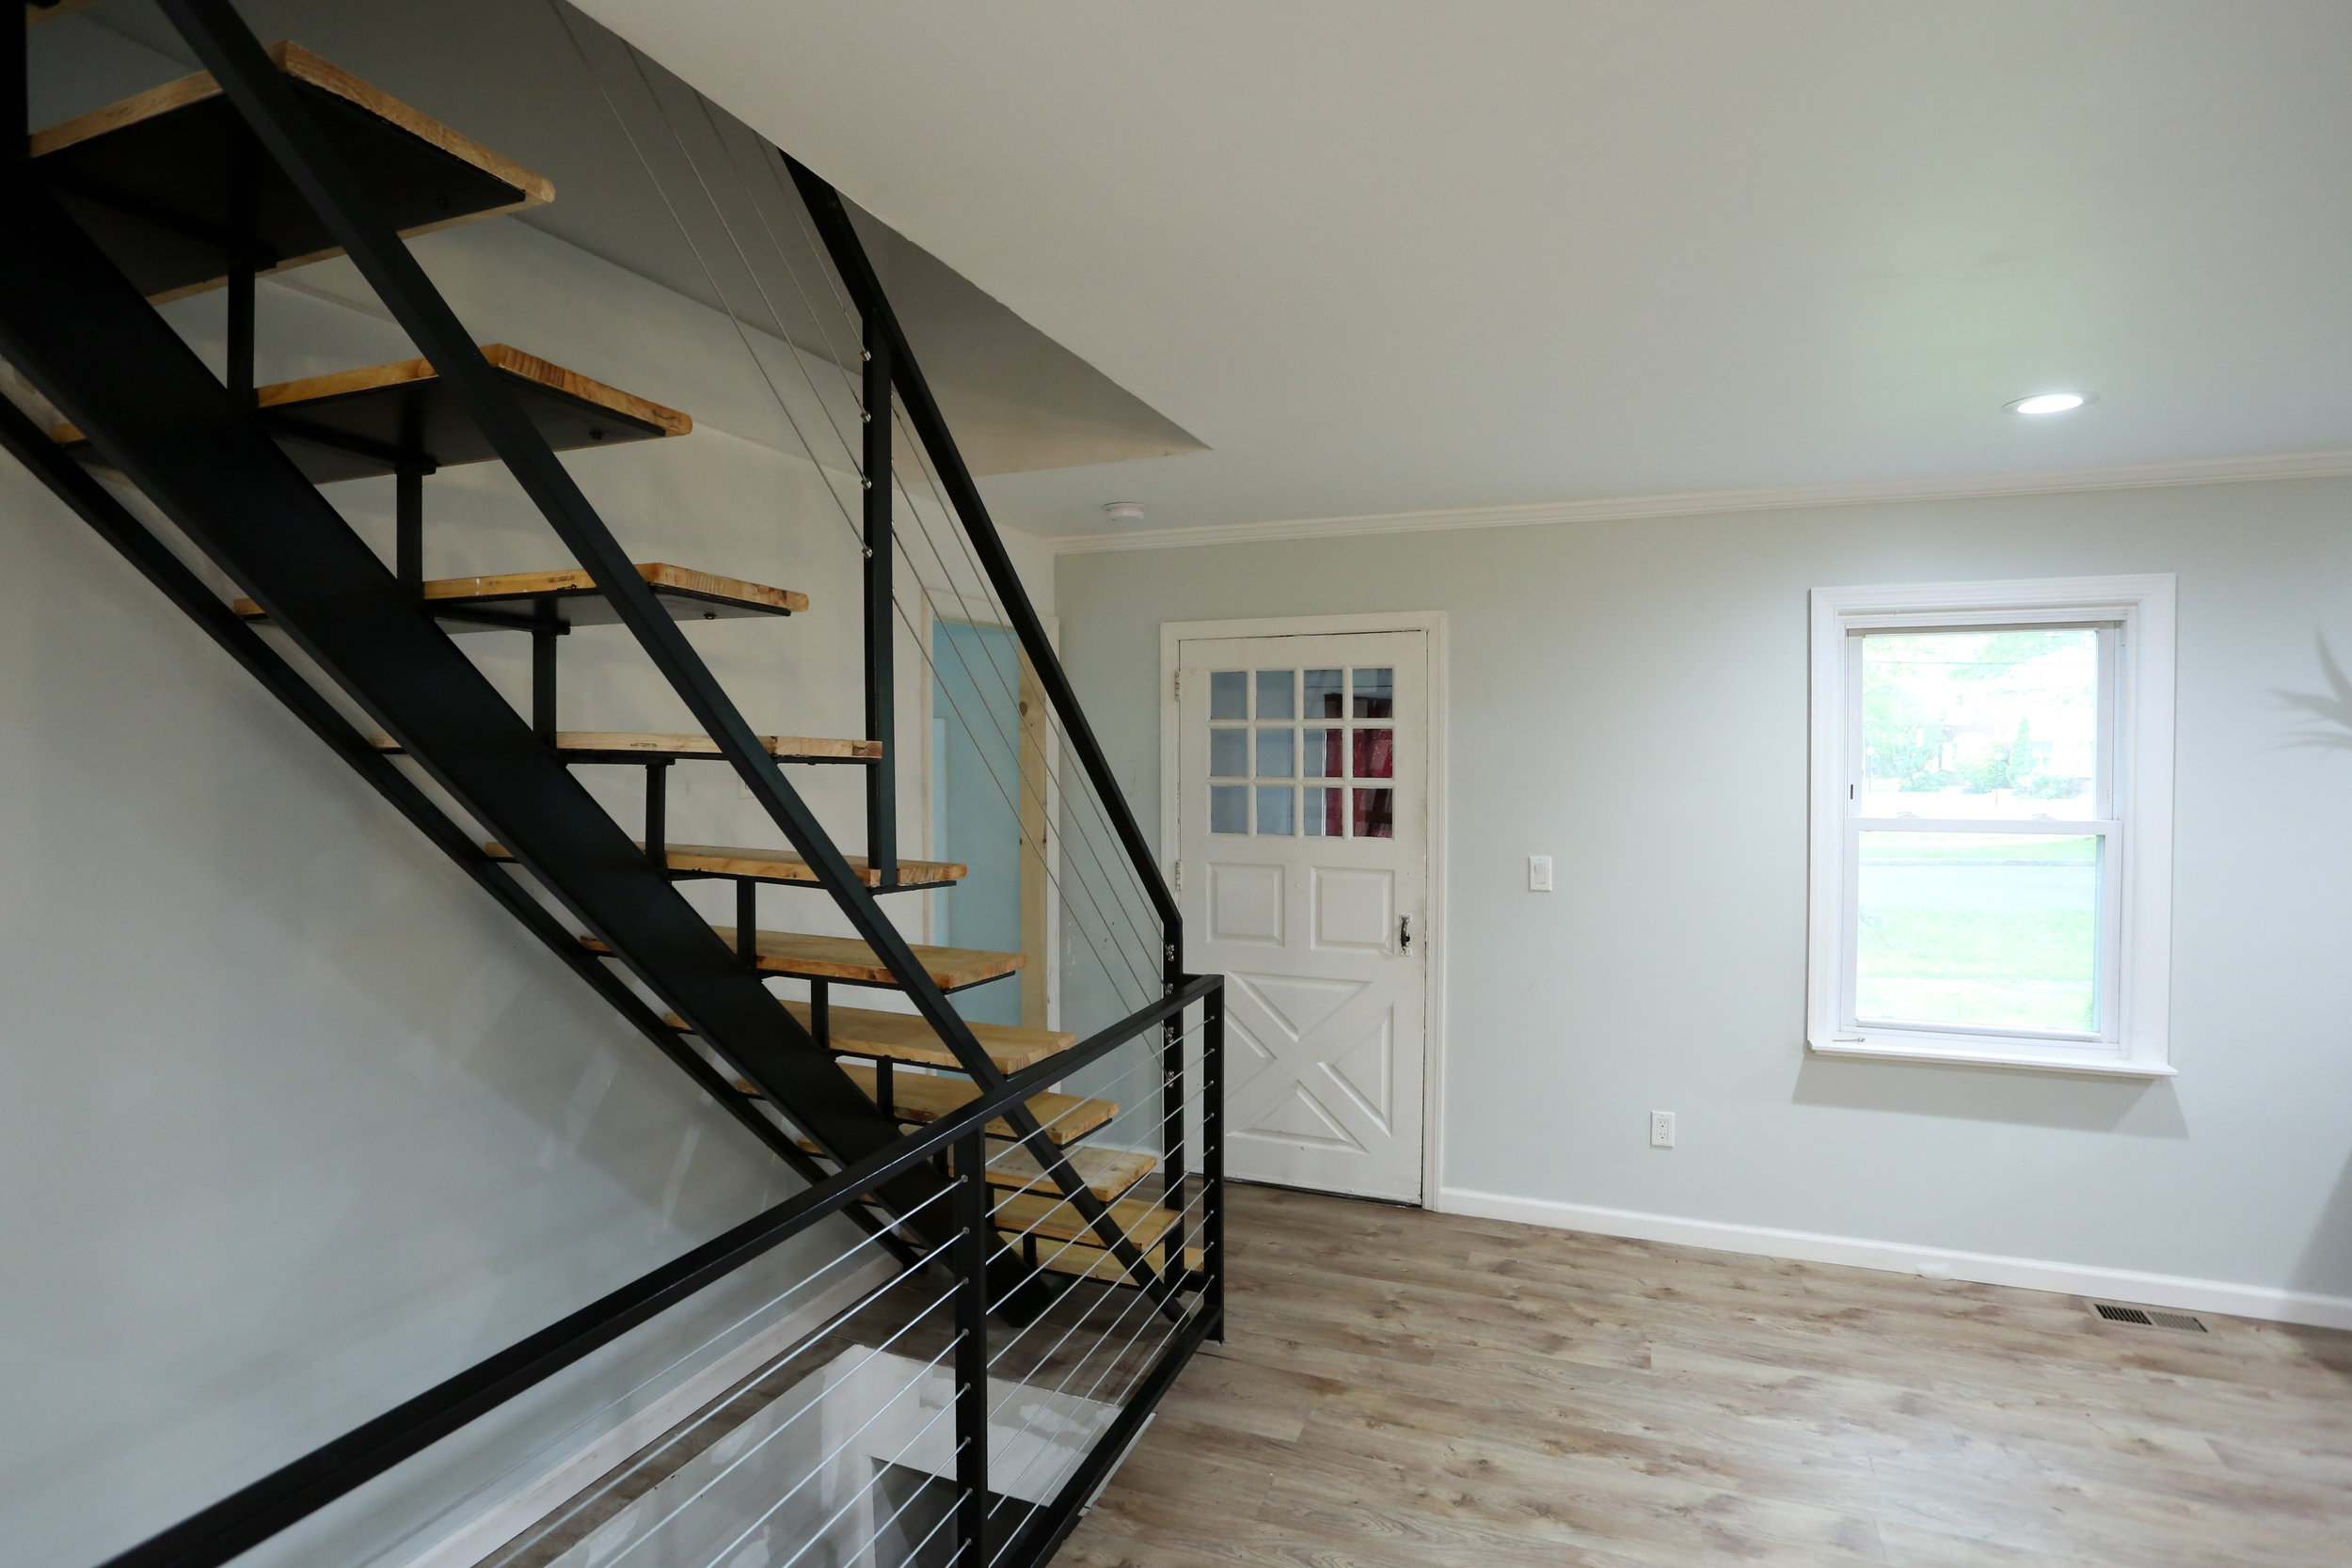 RENOVATION PROJECT IN ENGLEWOOD, NJ